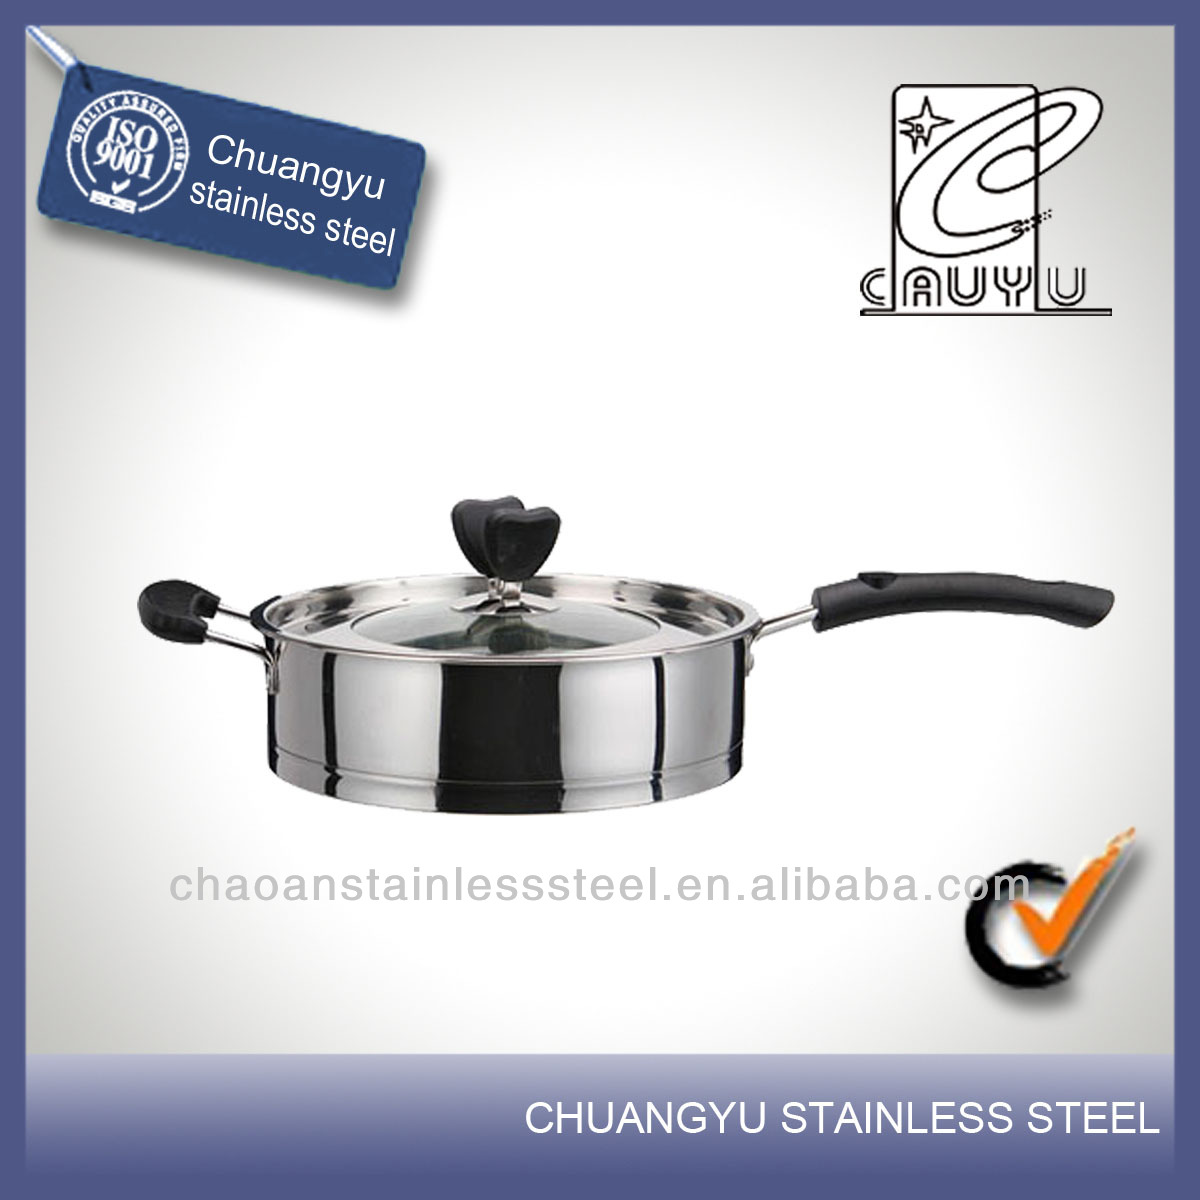 New product stainless steel ceramic frying with lid pan